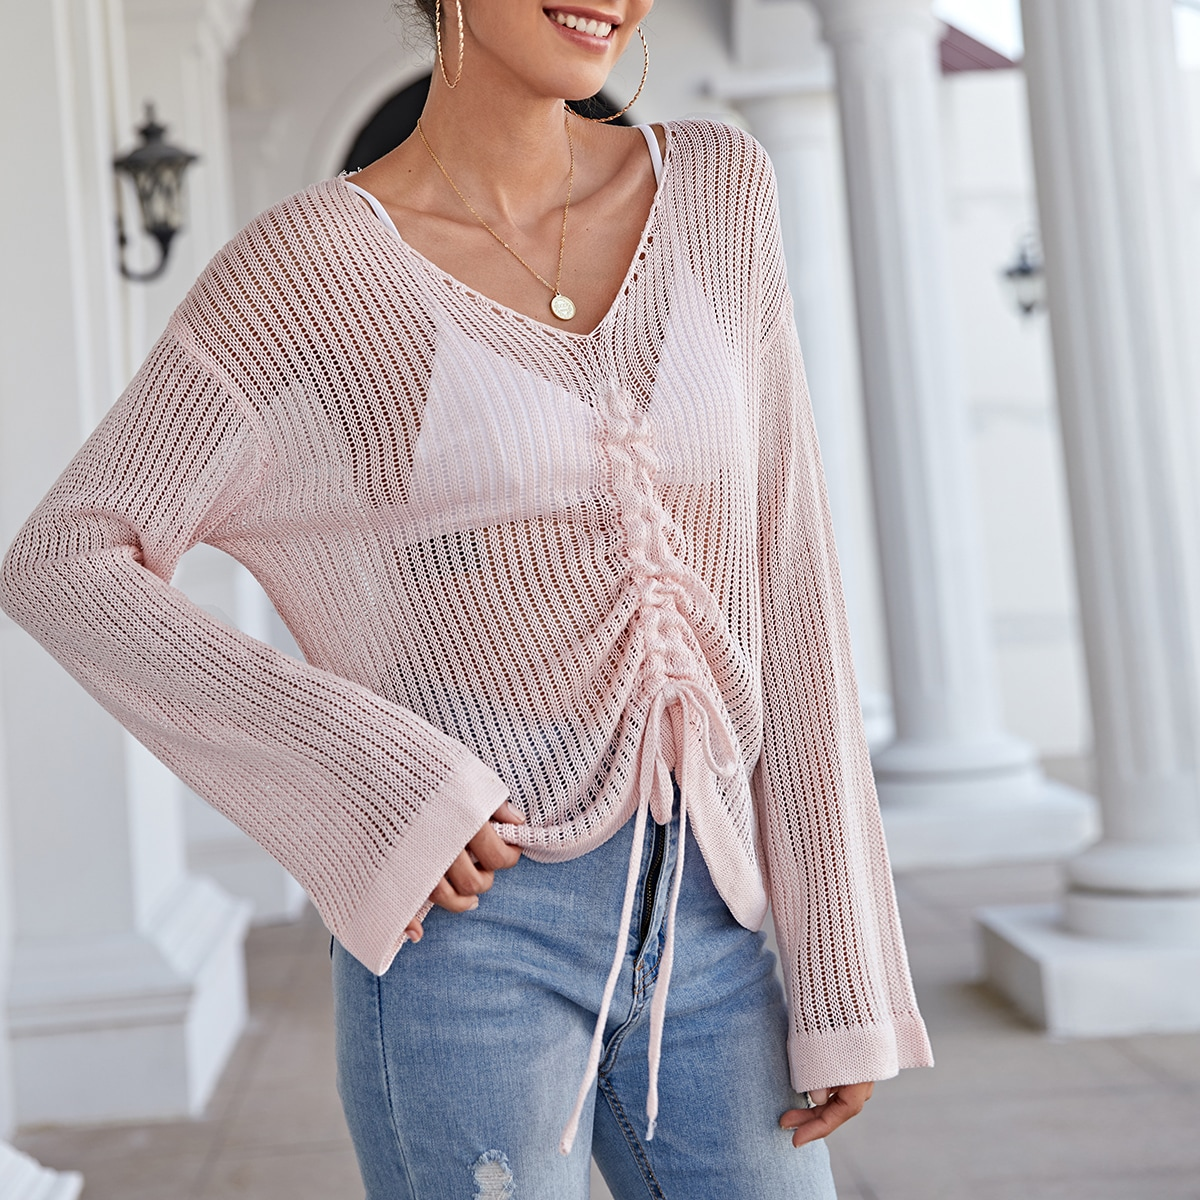 Drop Shoulder Drawstring Front Open Knit Cover Up Without Bra